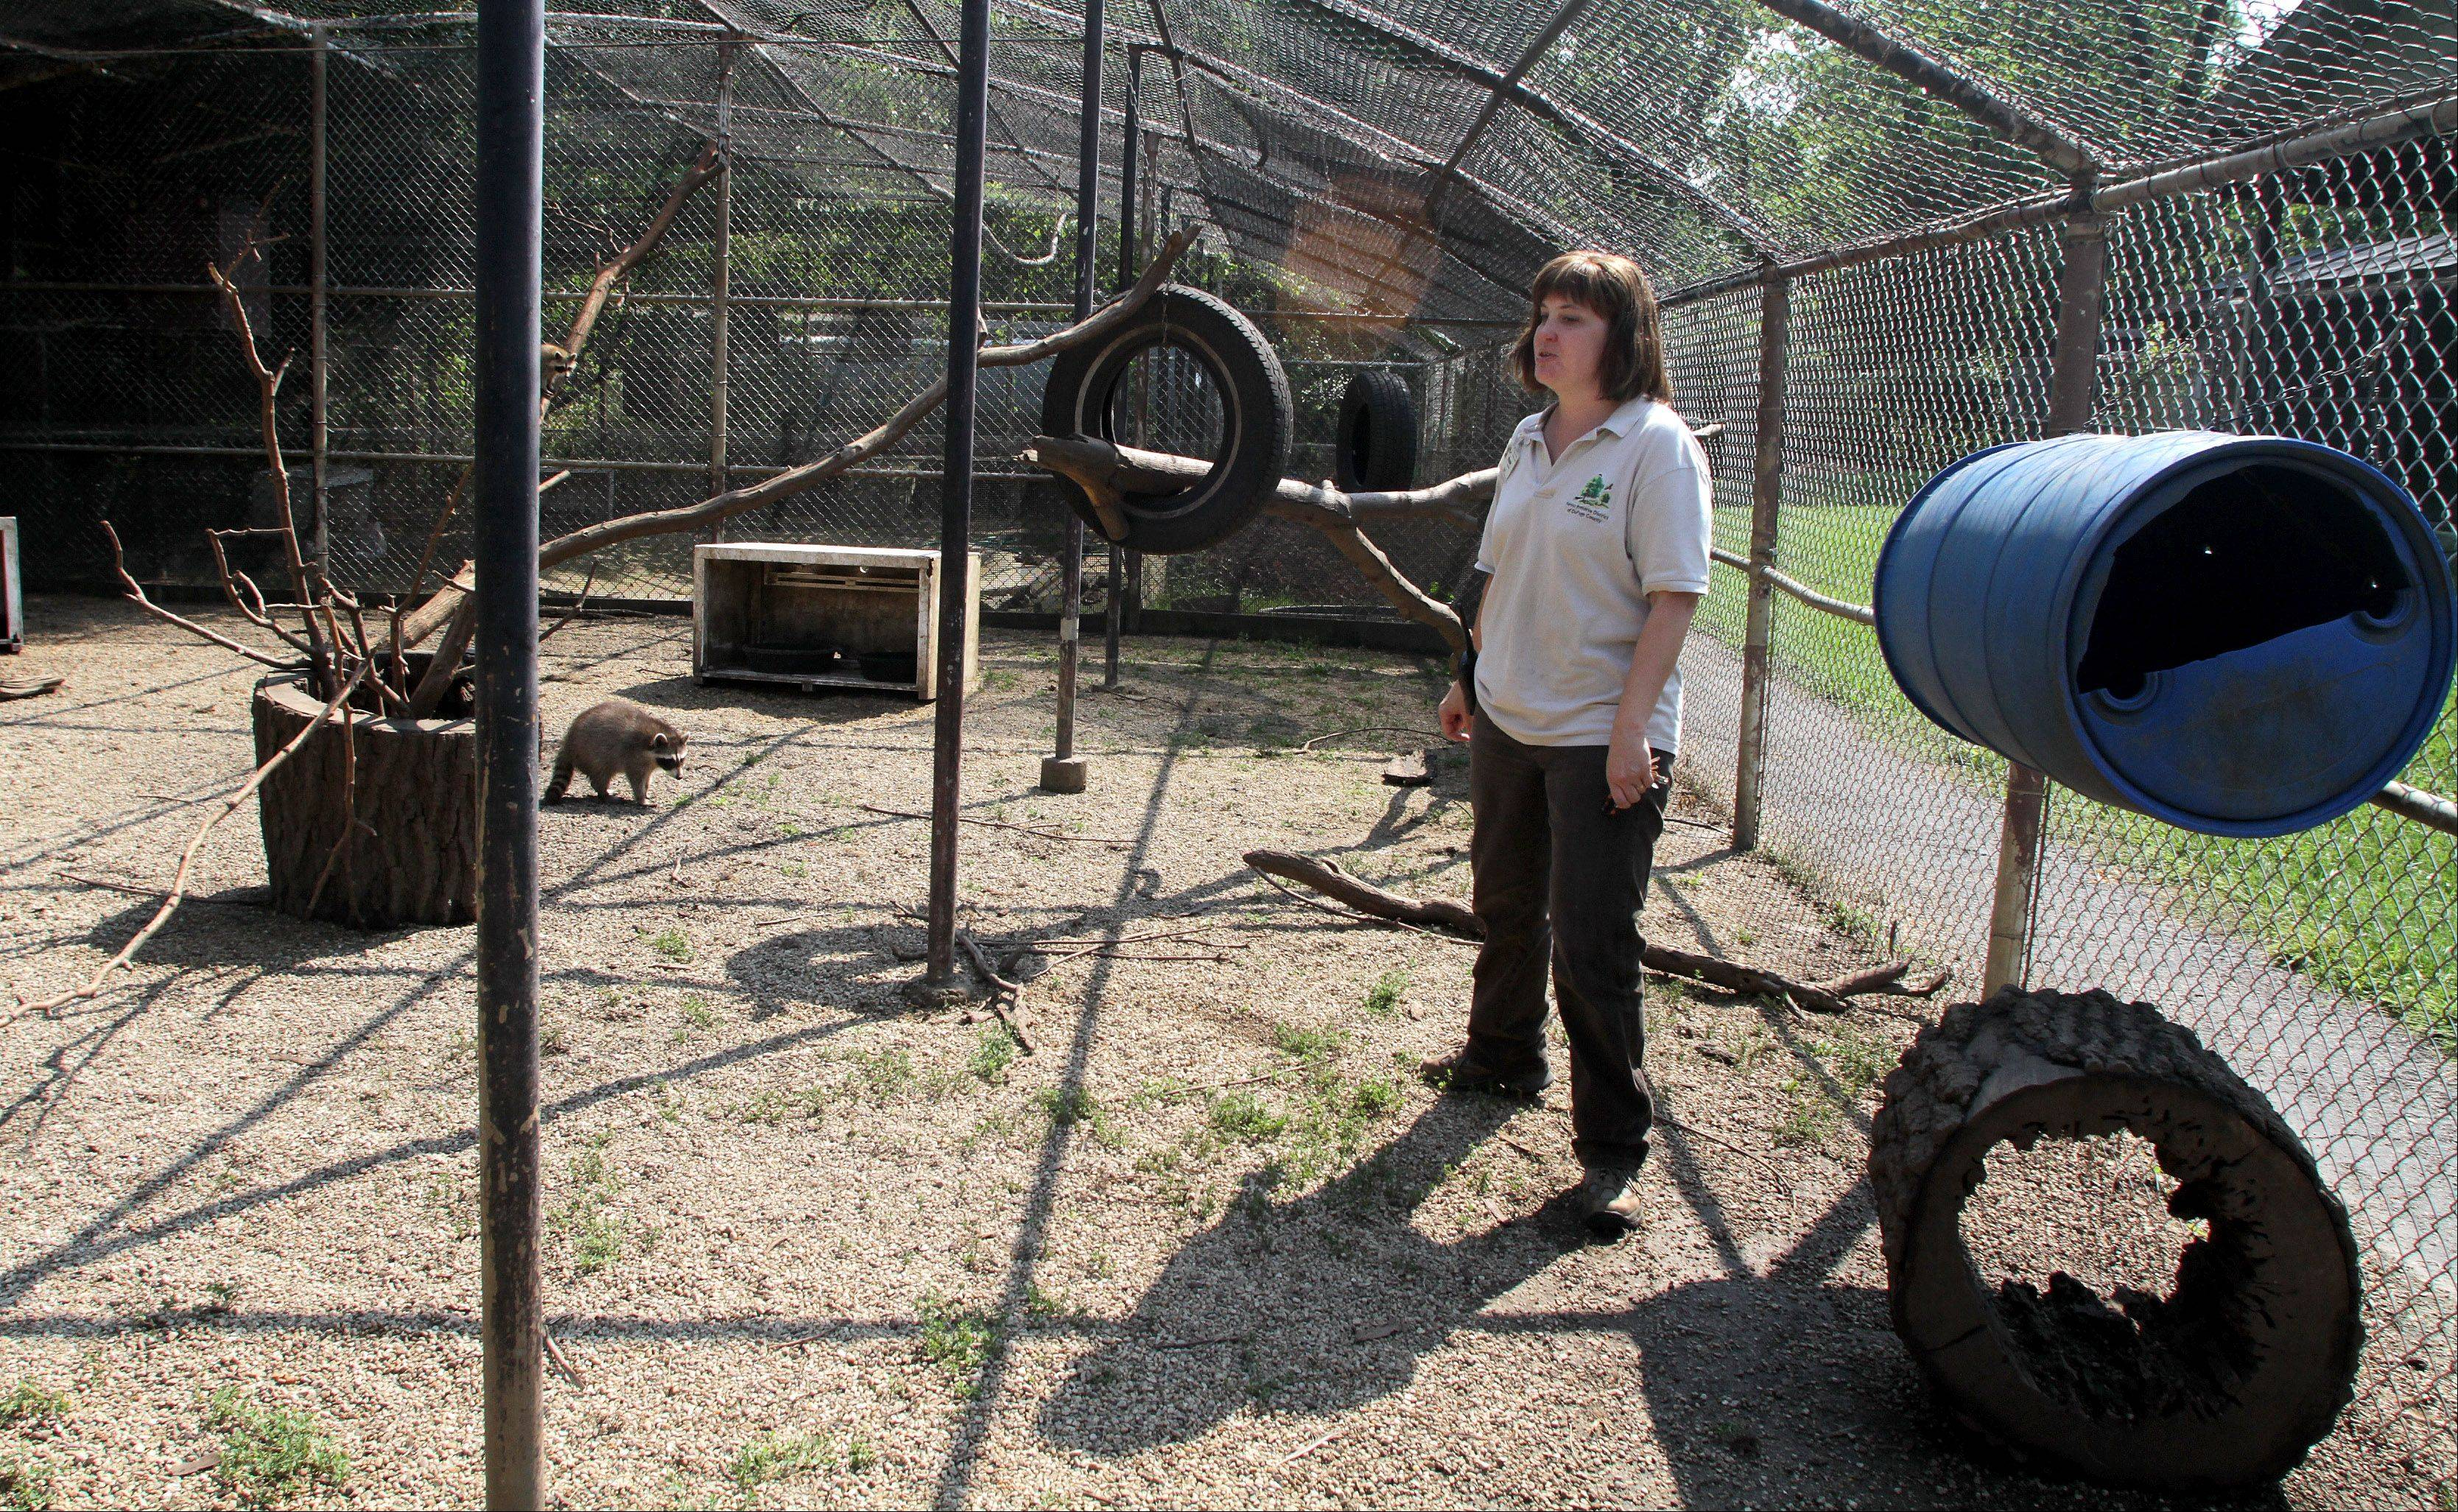 Wildlife specialist Rose Augustine takes a look around a raccoon cage in the outdoor rehab area at the Willowbrook Wildlife Center in Glen Ellyn. Animals spend time here in the weeks and months before they are released into the wild.